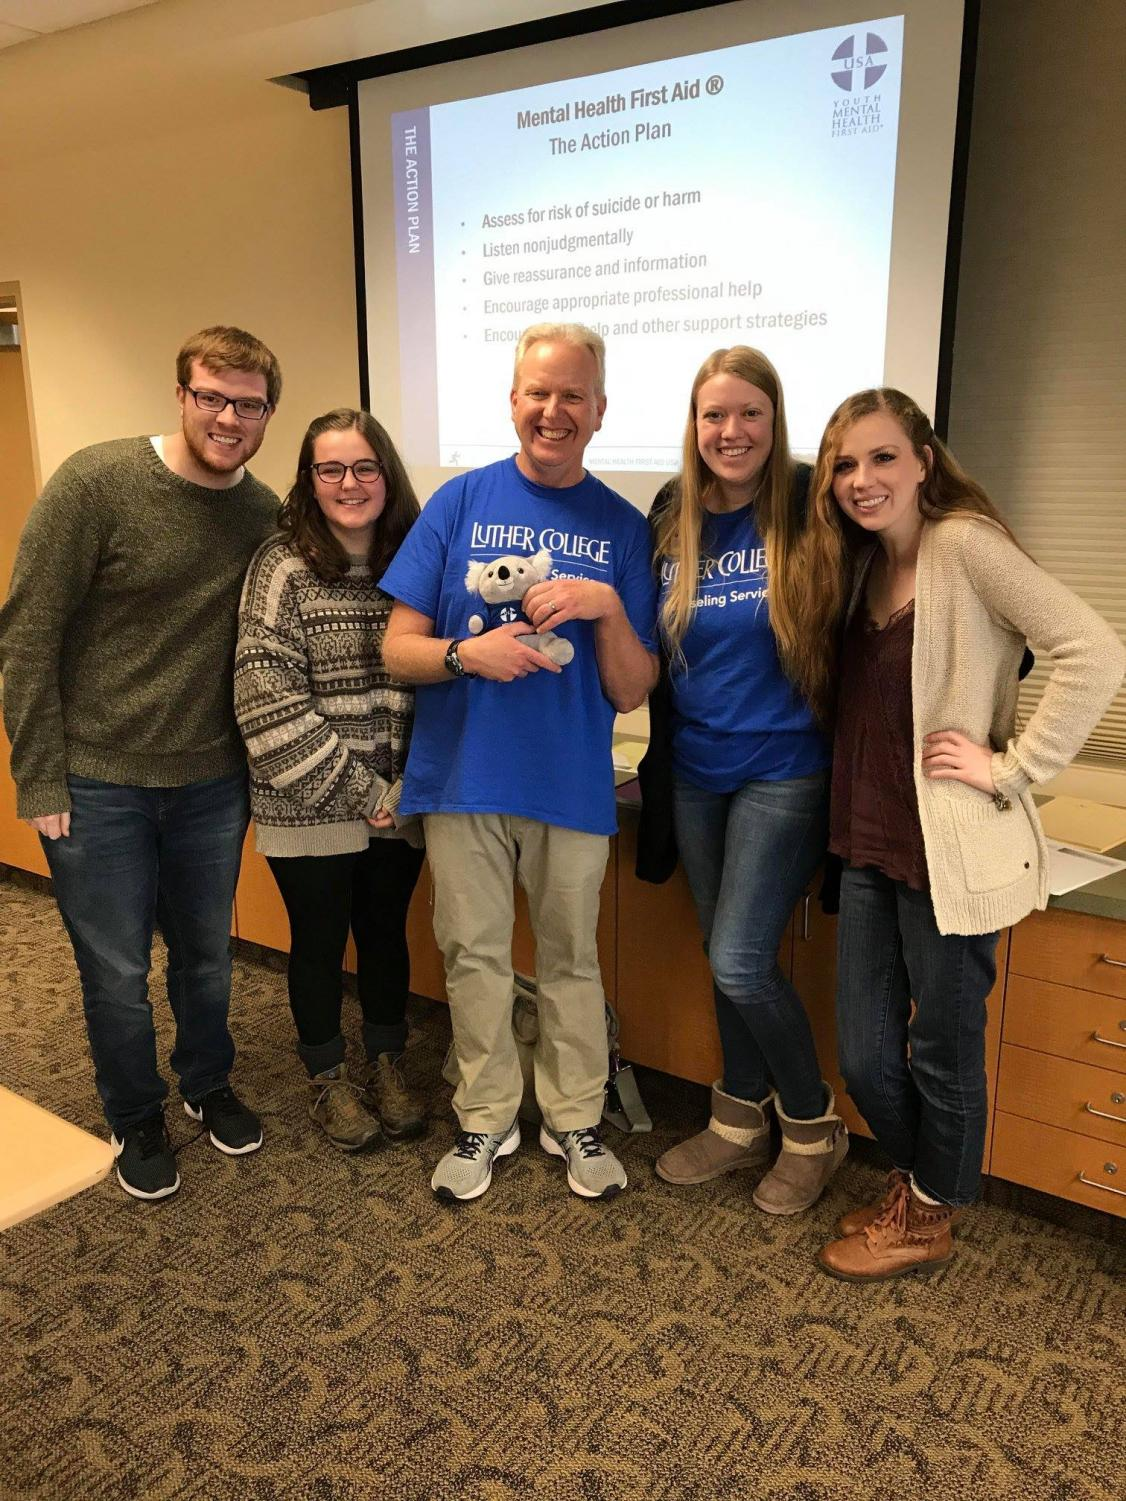 Tyler Zeimet ('19),  Neve Heimer-Lang ('19), Stu Johnston, Mimi Finger ('19) and Maren Phalen ('19) support students with their work in counseling services.